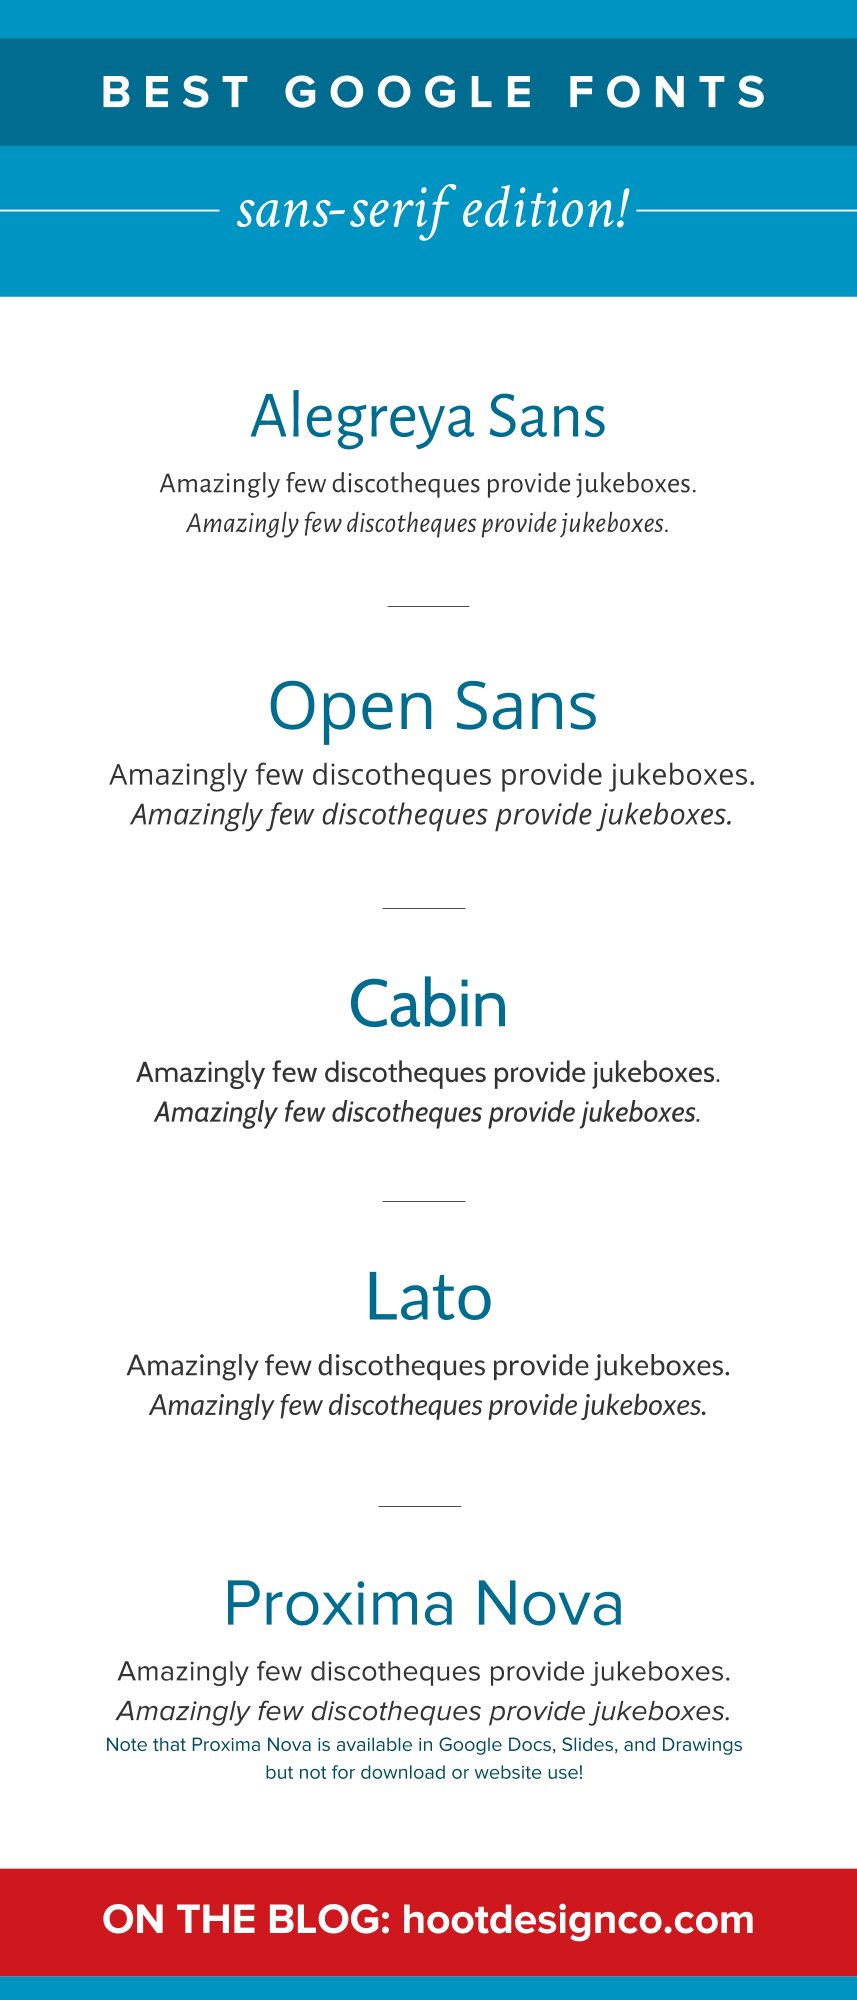 What+are+the+best+sans-serif+fonts+on+Google+fonts_+There+are+lots+of+options,+but+these+are+great+for+both+paragraphs+AND+headings.png